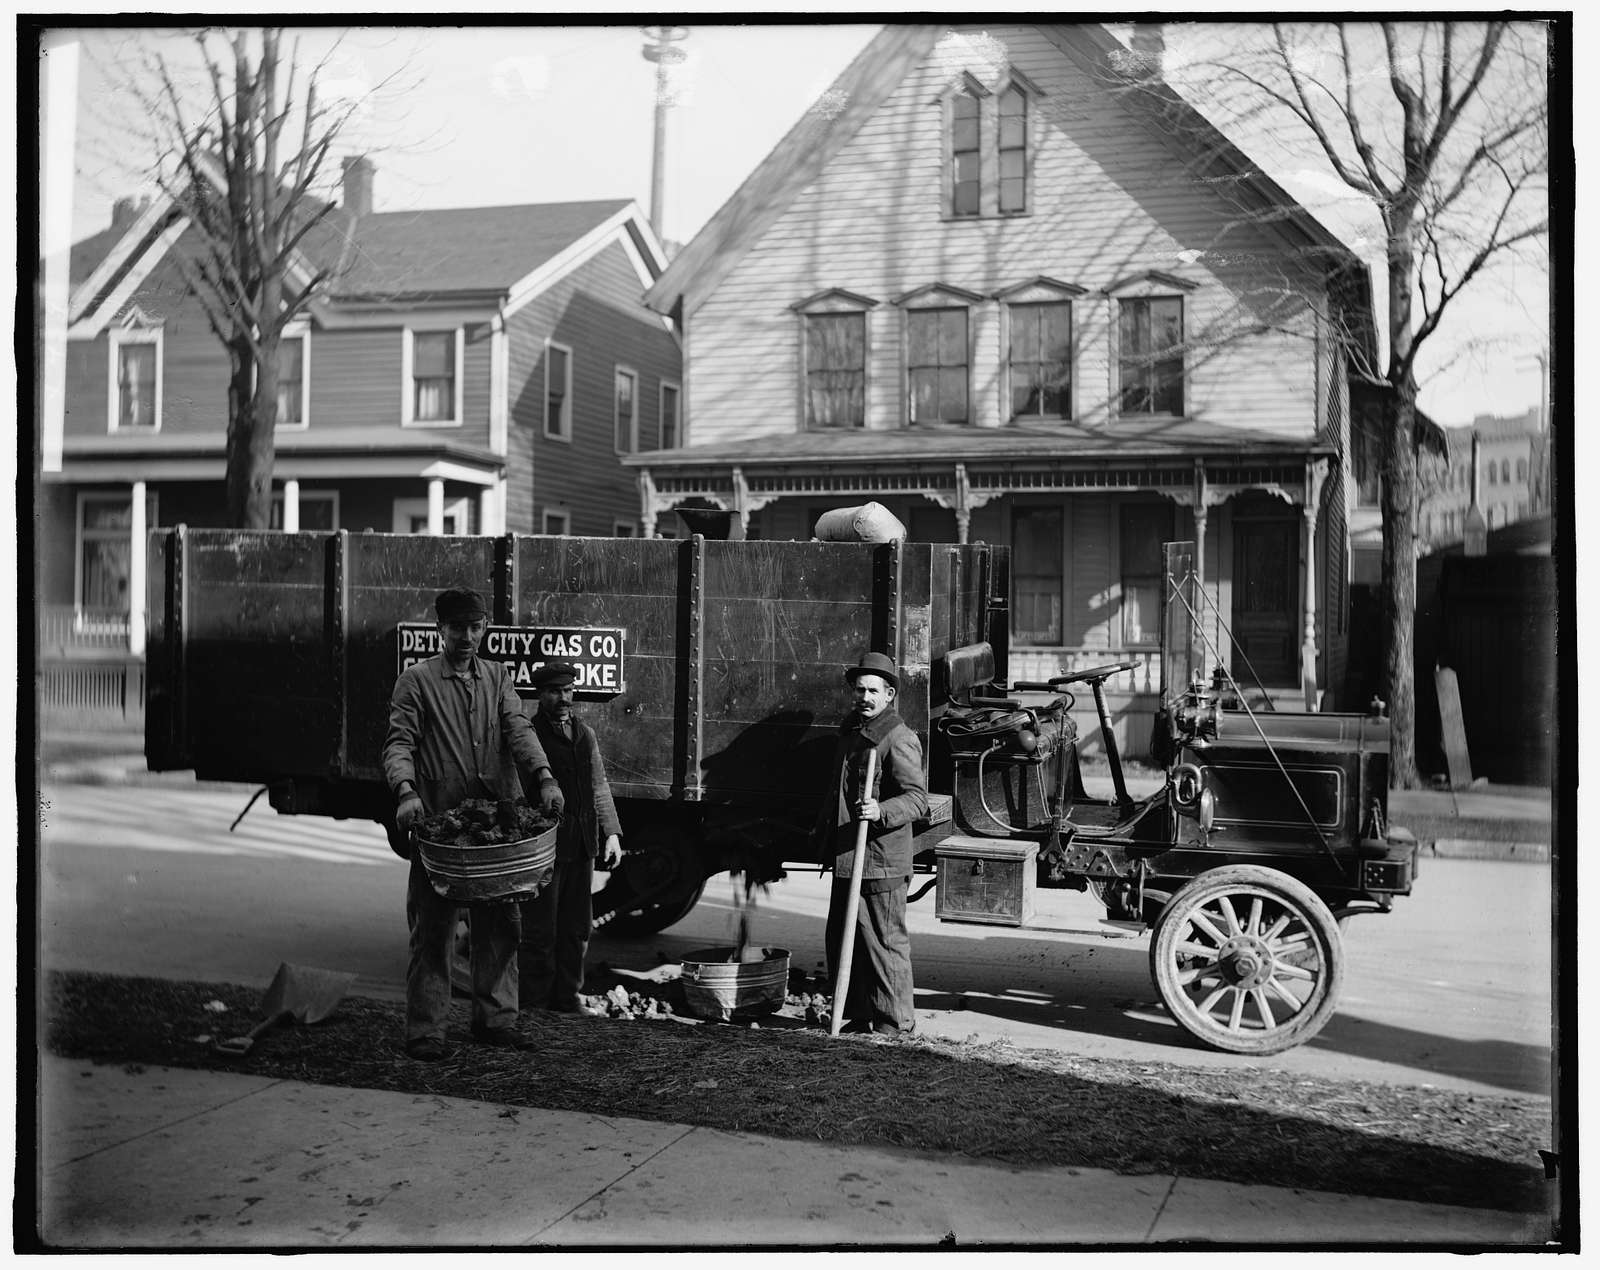 Coke delivery wagon and workers, Detroit City Gas Co., Mich.